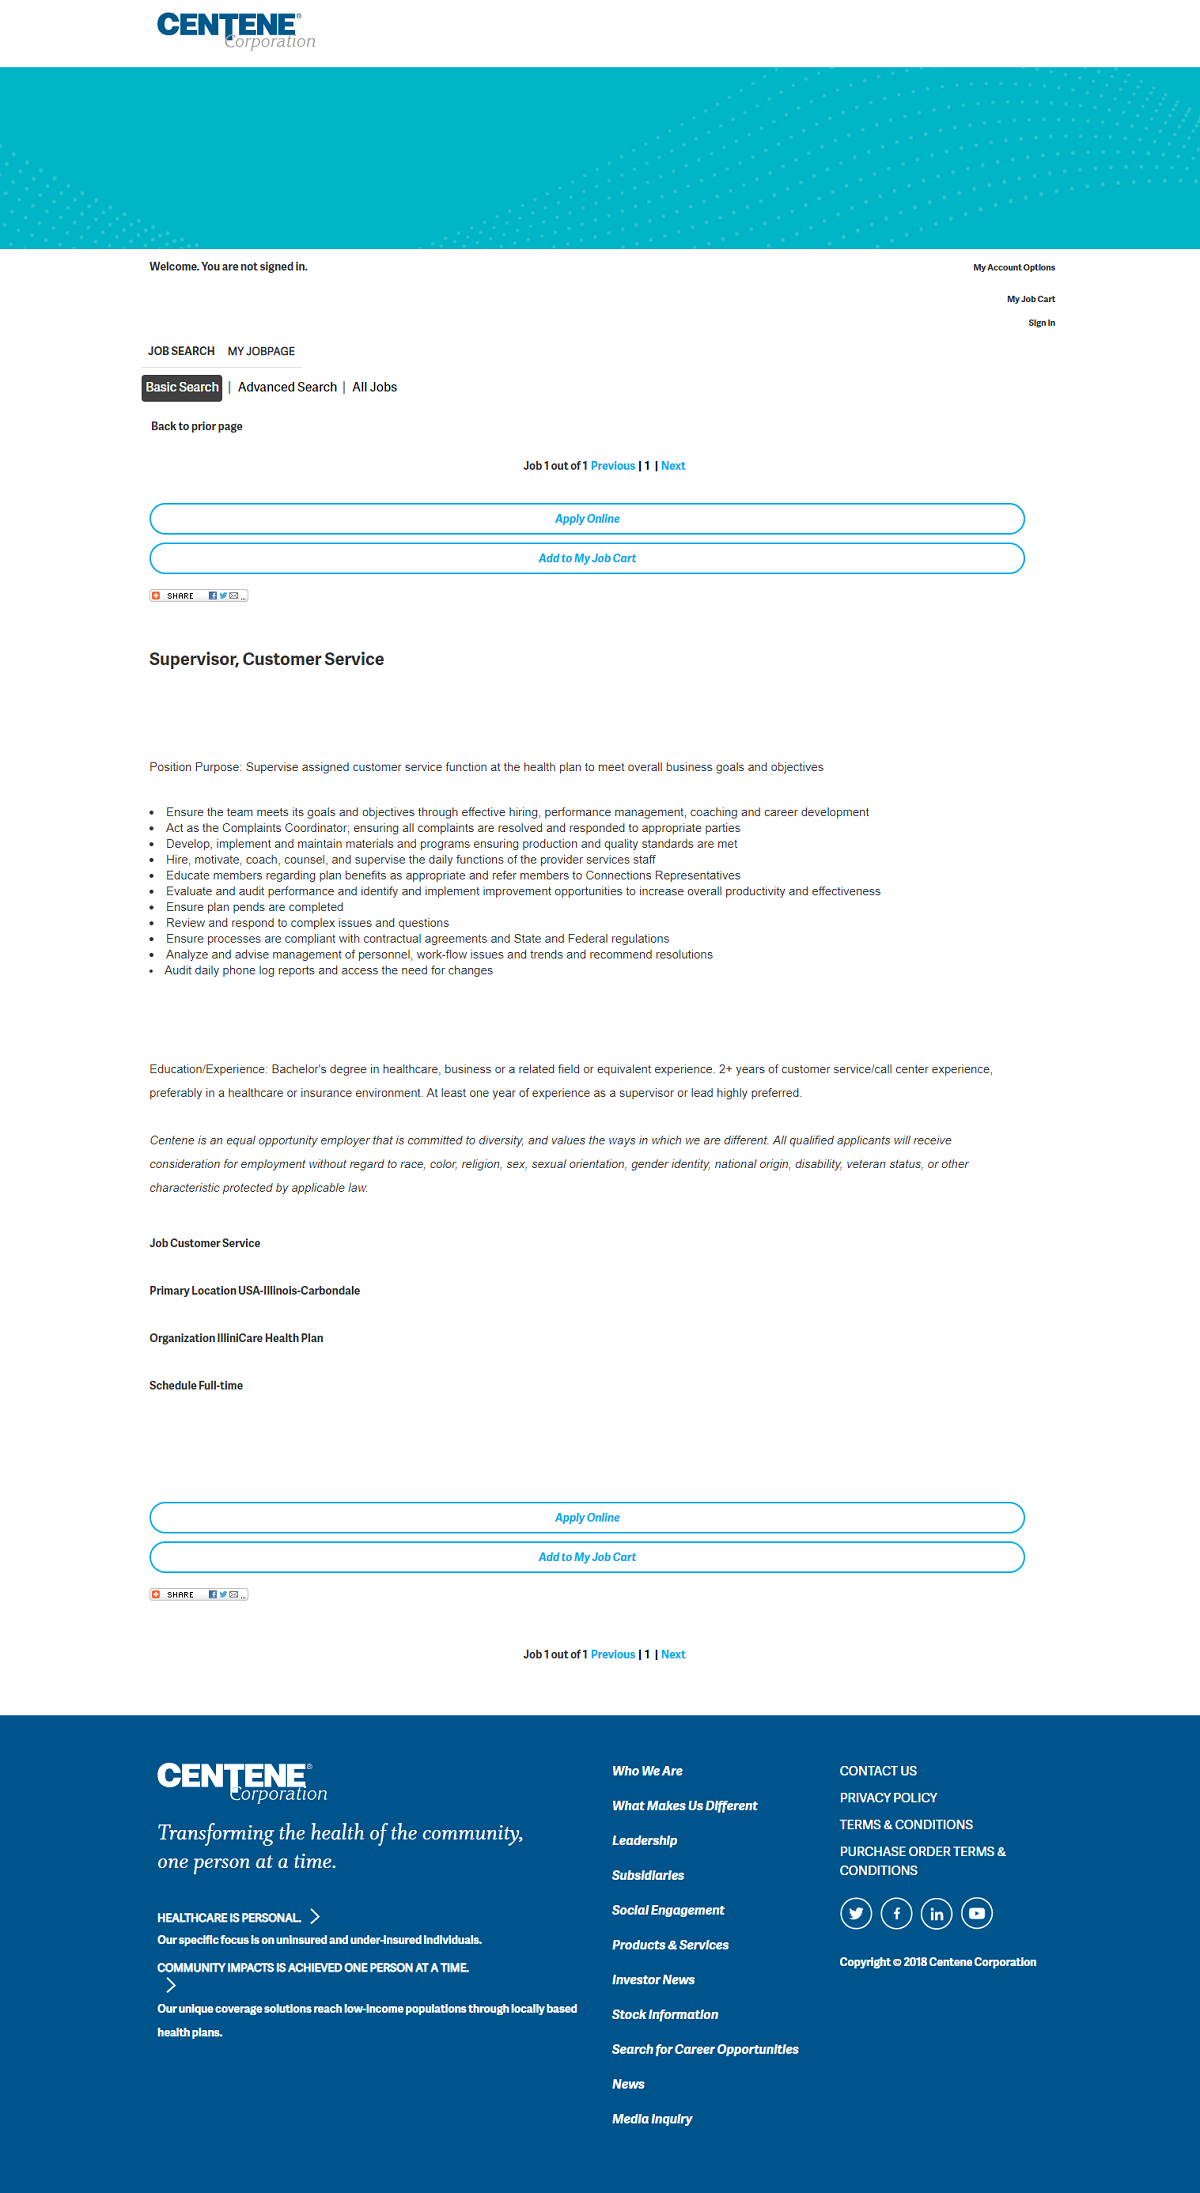 Centene Taleo Job Description Page Before